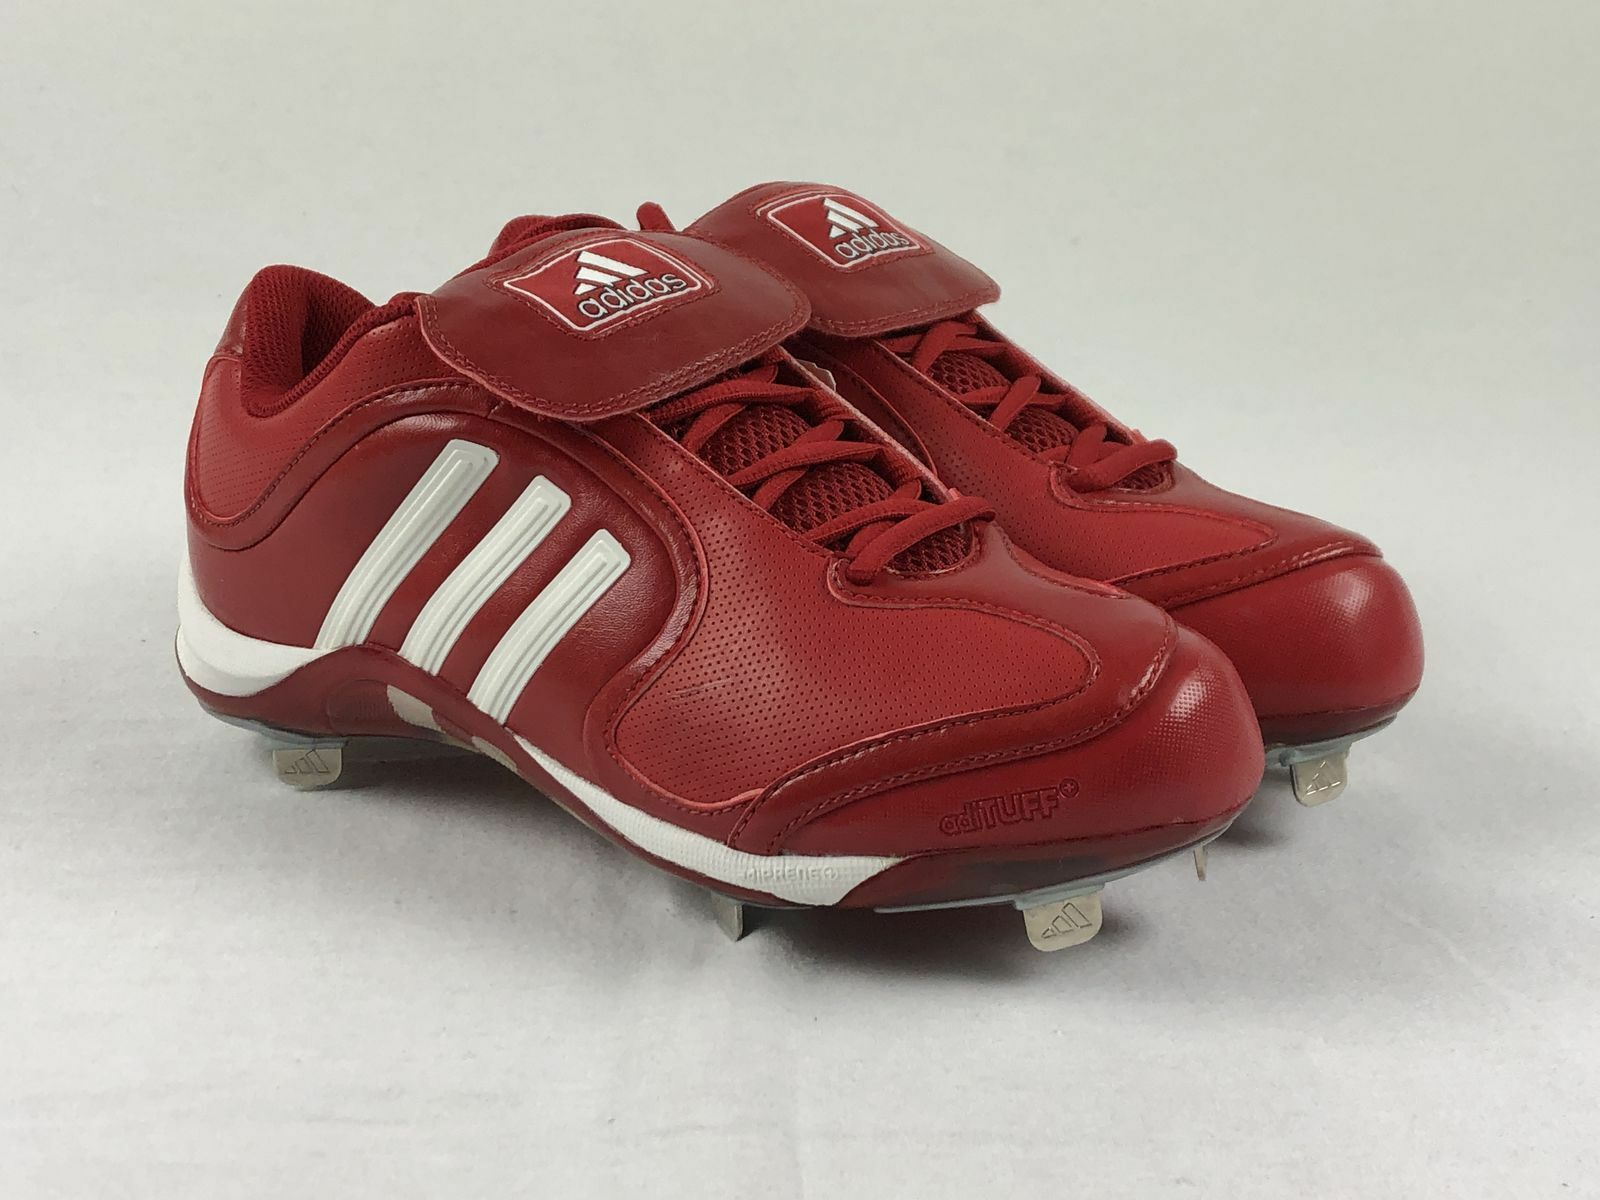 NEW adidas SM Excelsior - Red Cleats (Men's 7)